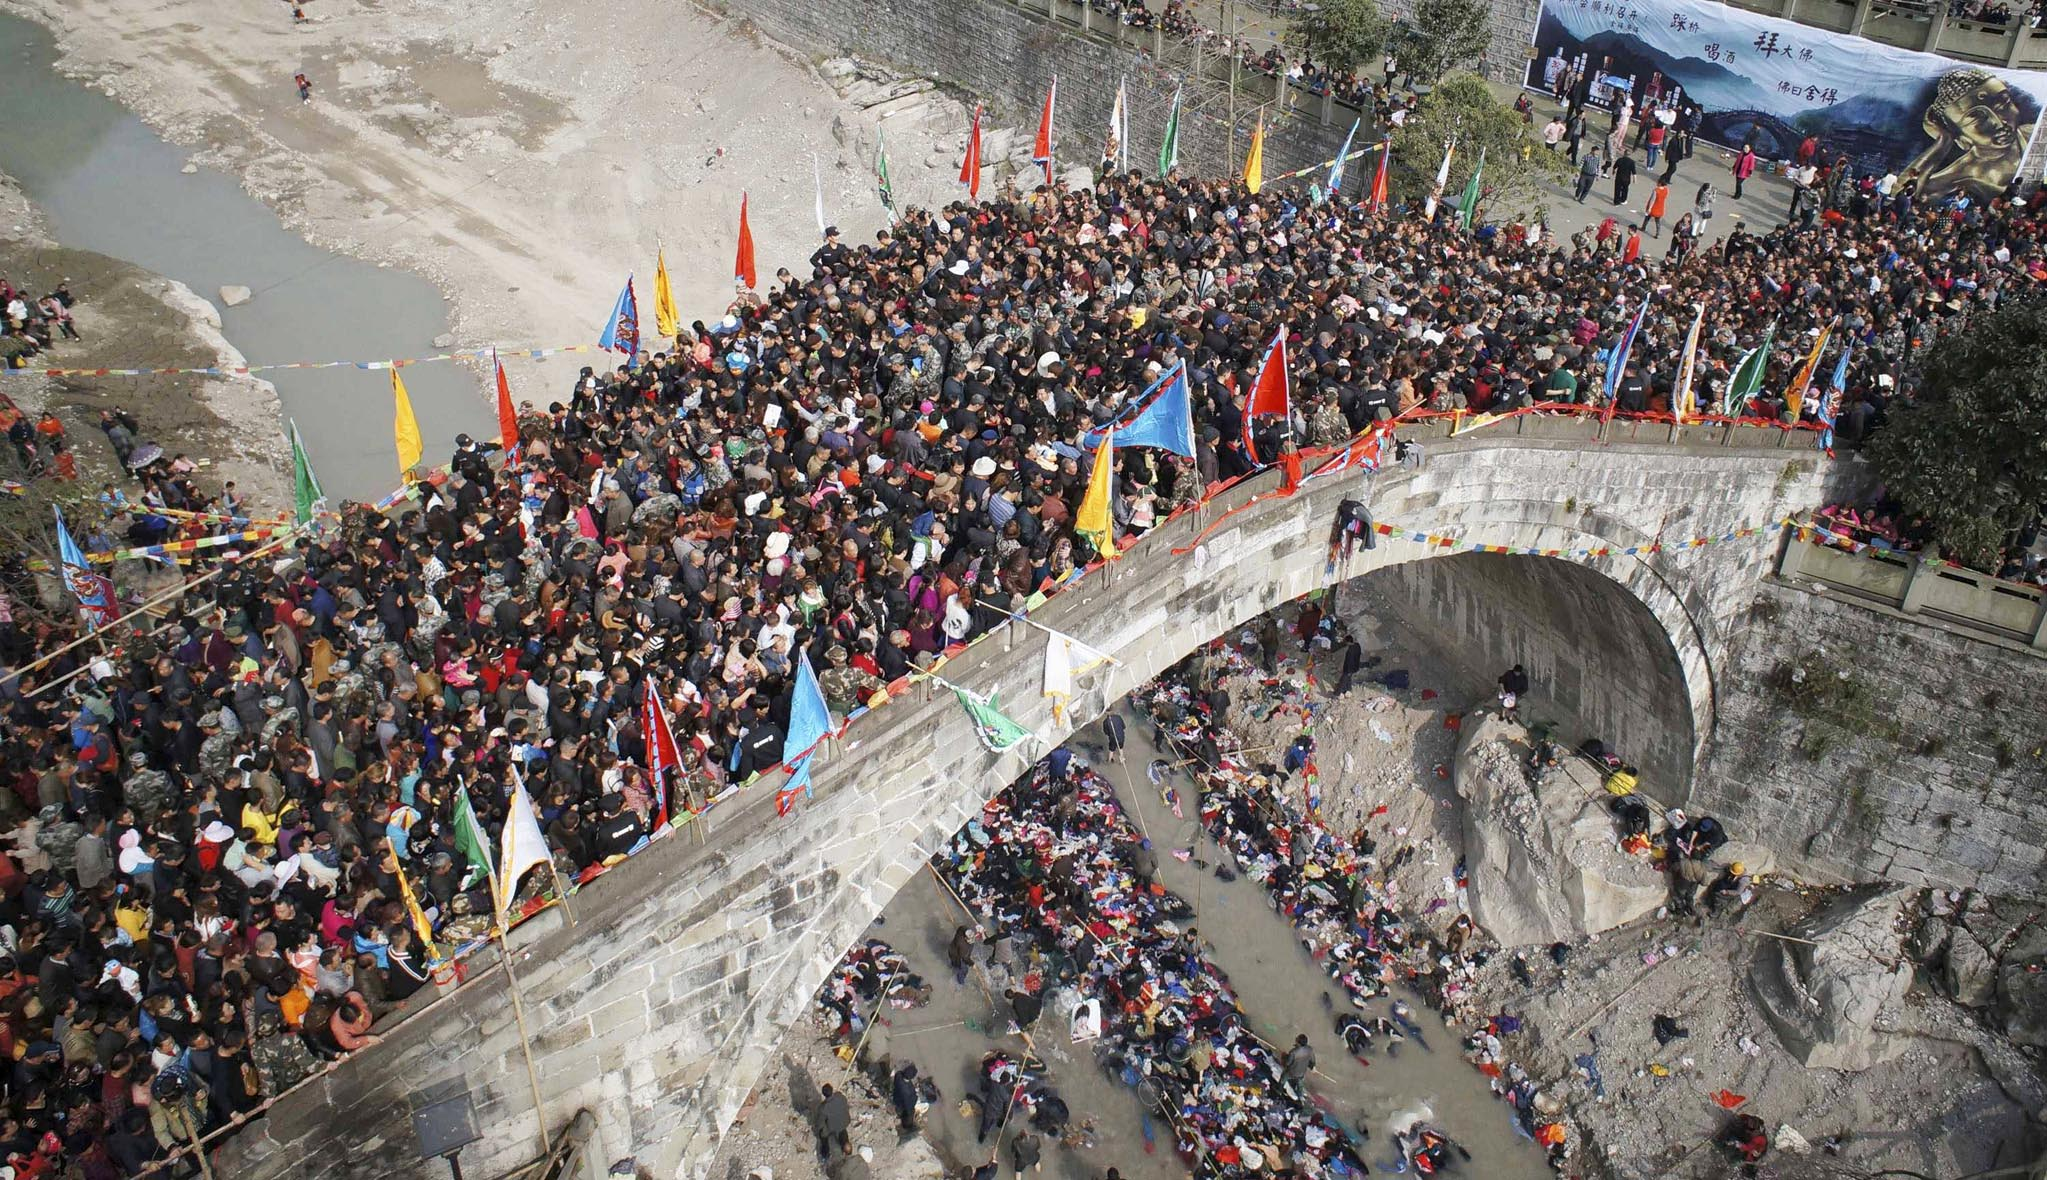 People crowd onto a bridge during the annual Caiqiaohui event in Mianyang